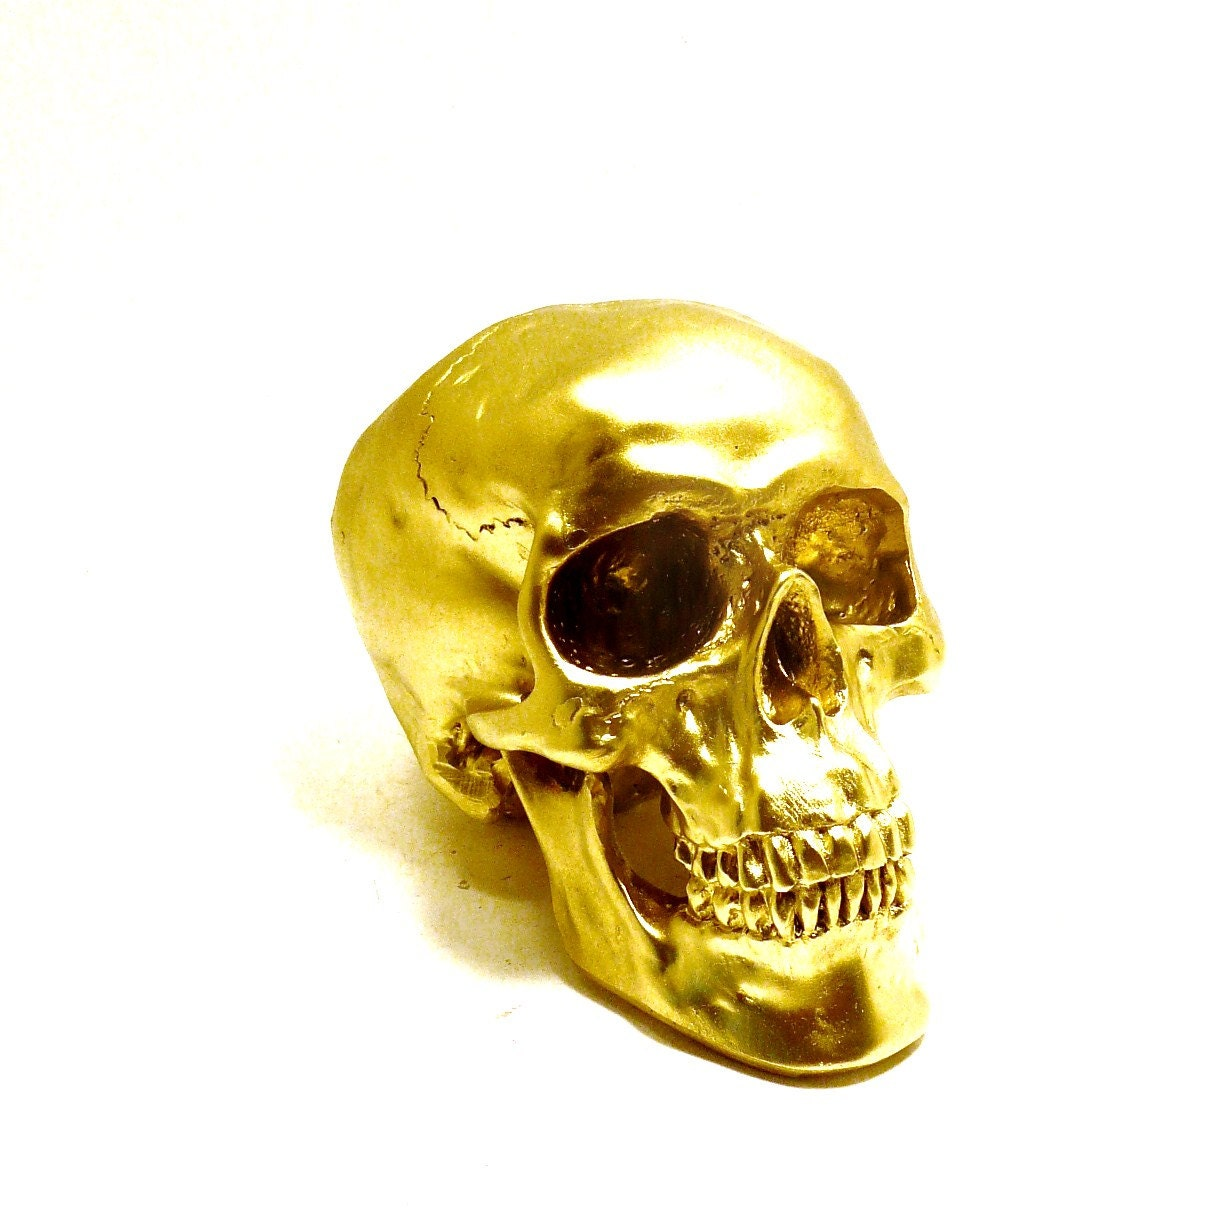 SKULLS HUMAN SKULL HEAD GOLD ART ANATOMY MODERN HOME DECOR GLAM METALLIC On The Hunt